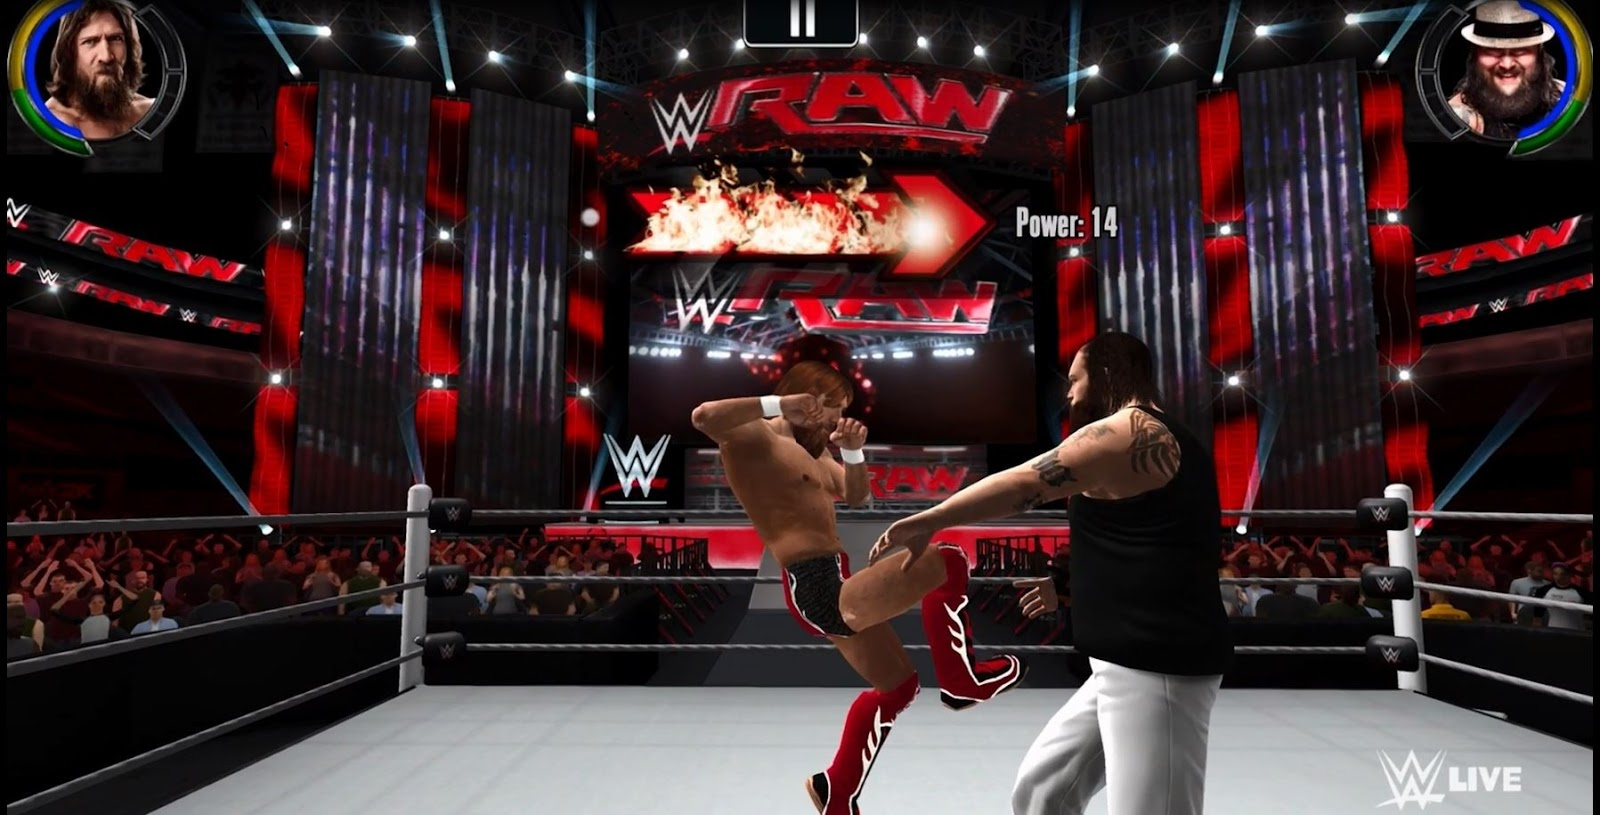 Wwe 2k16 free download for pc ~ download free games.